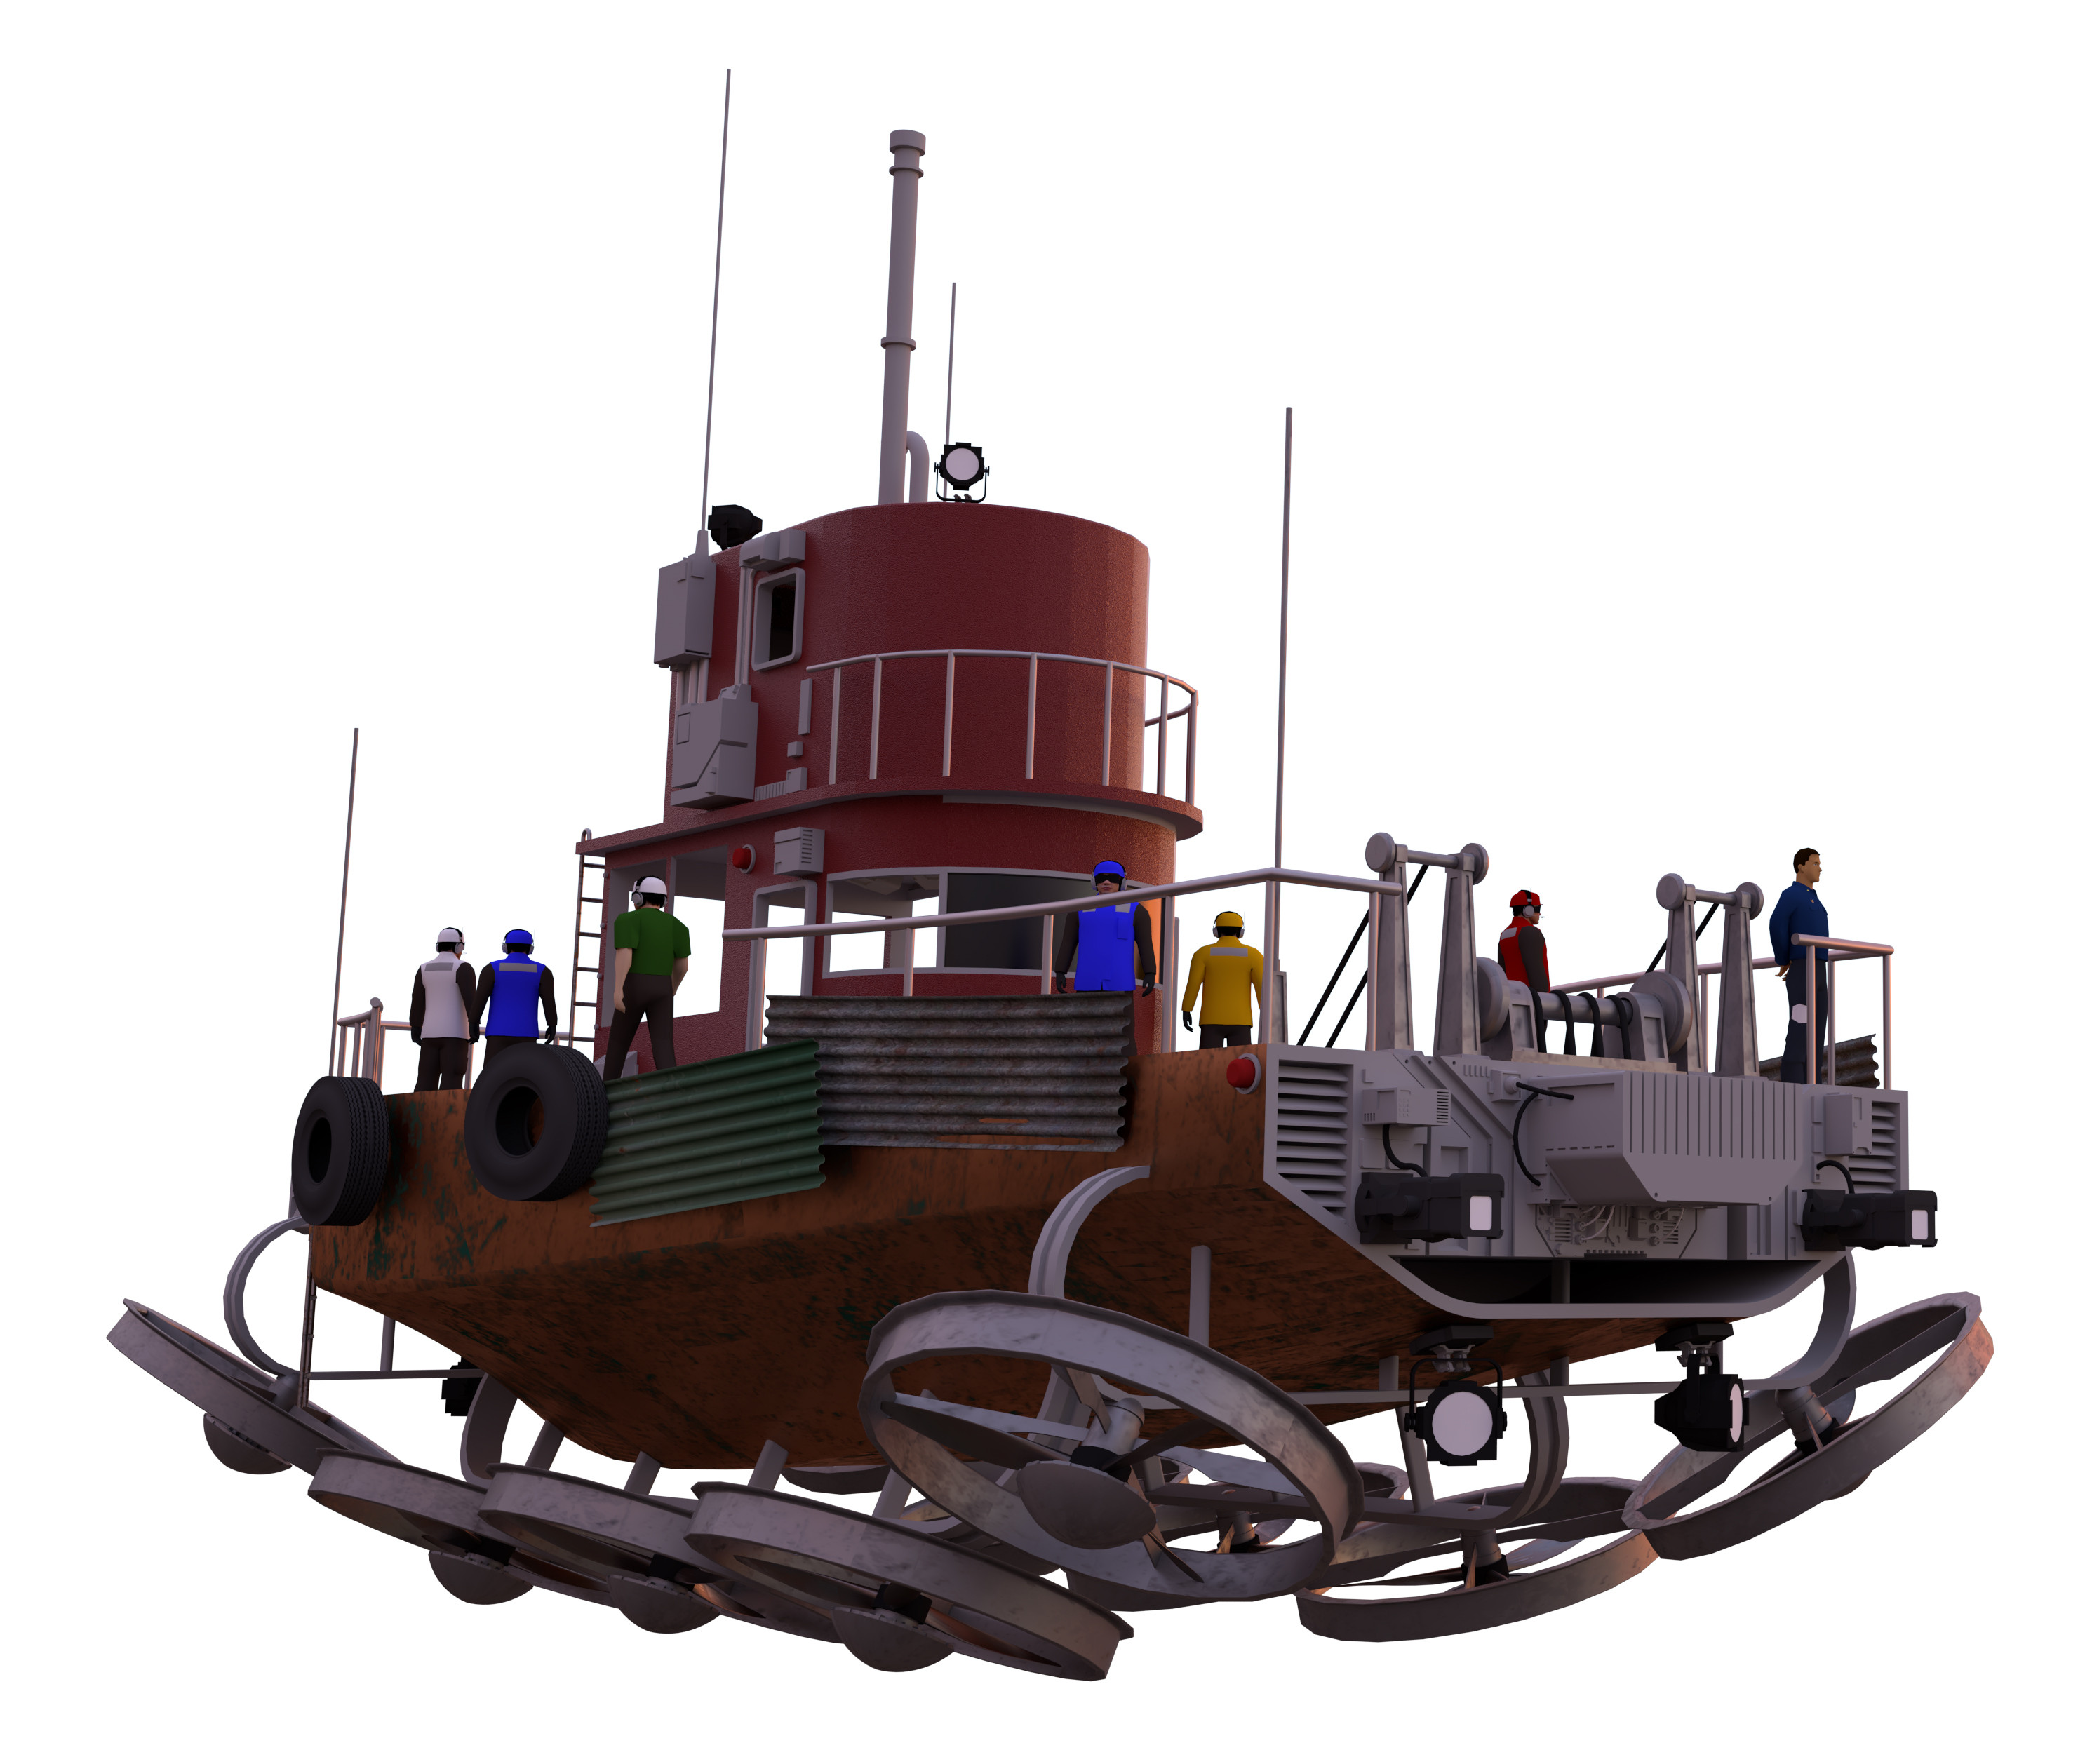 3D render of the aerial ship